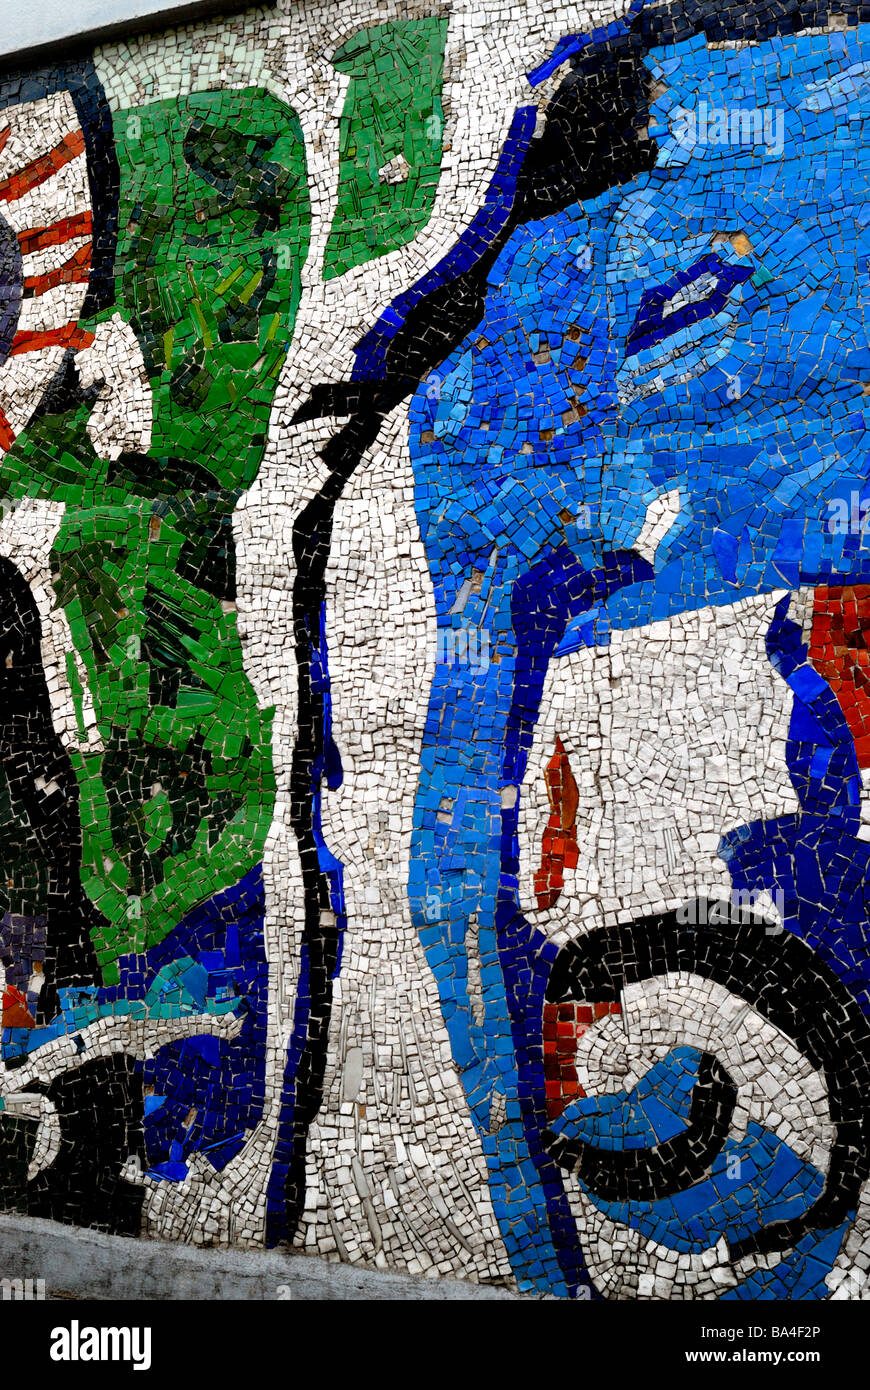 Paris France, 'Immobilier', 'logement, Détail de la mosaïque murale', l'art abstrait Photo Stock